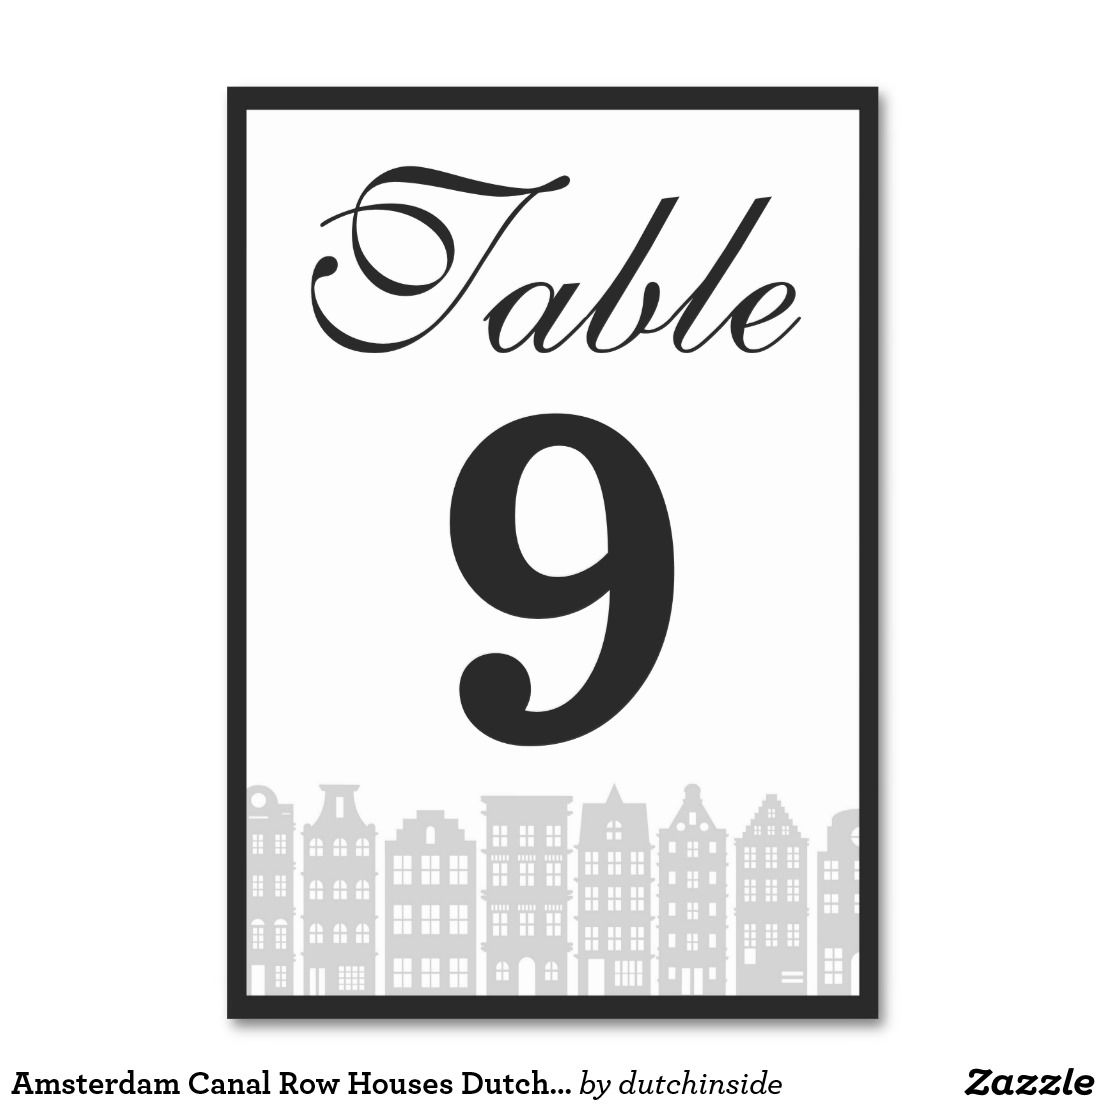 Amsterdam Canal Row Houses Dutch Wedding Reception Table Number Zazzle Com Wedding Reception Tables Row House Amsterdam Canals